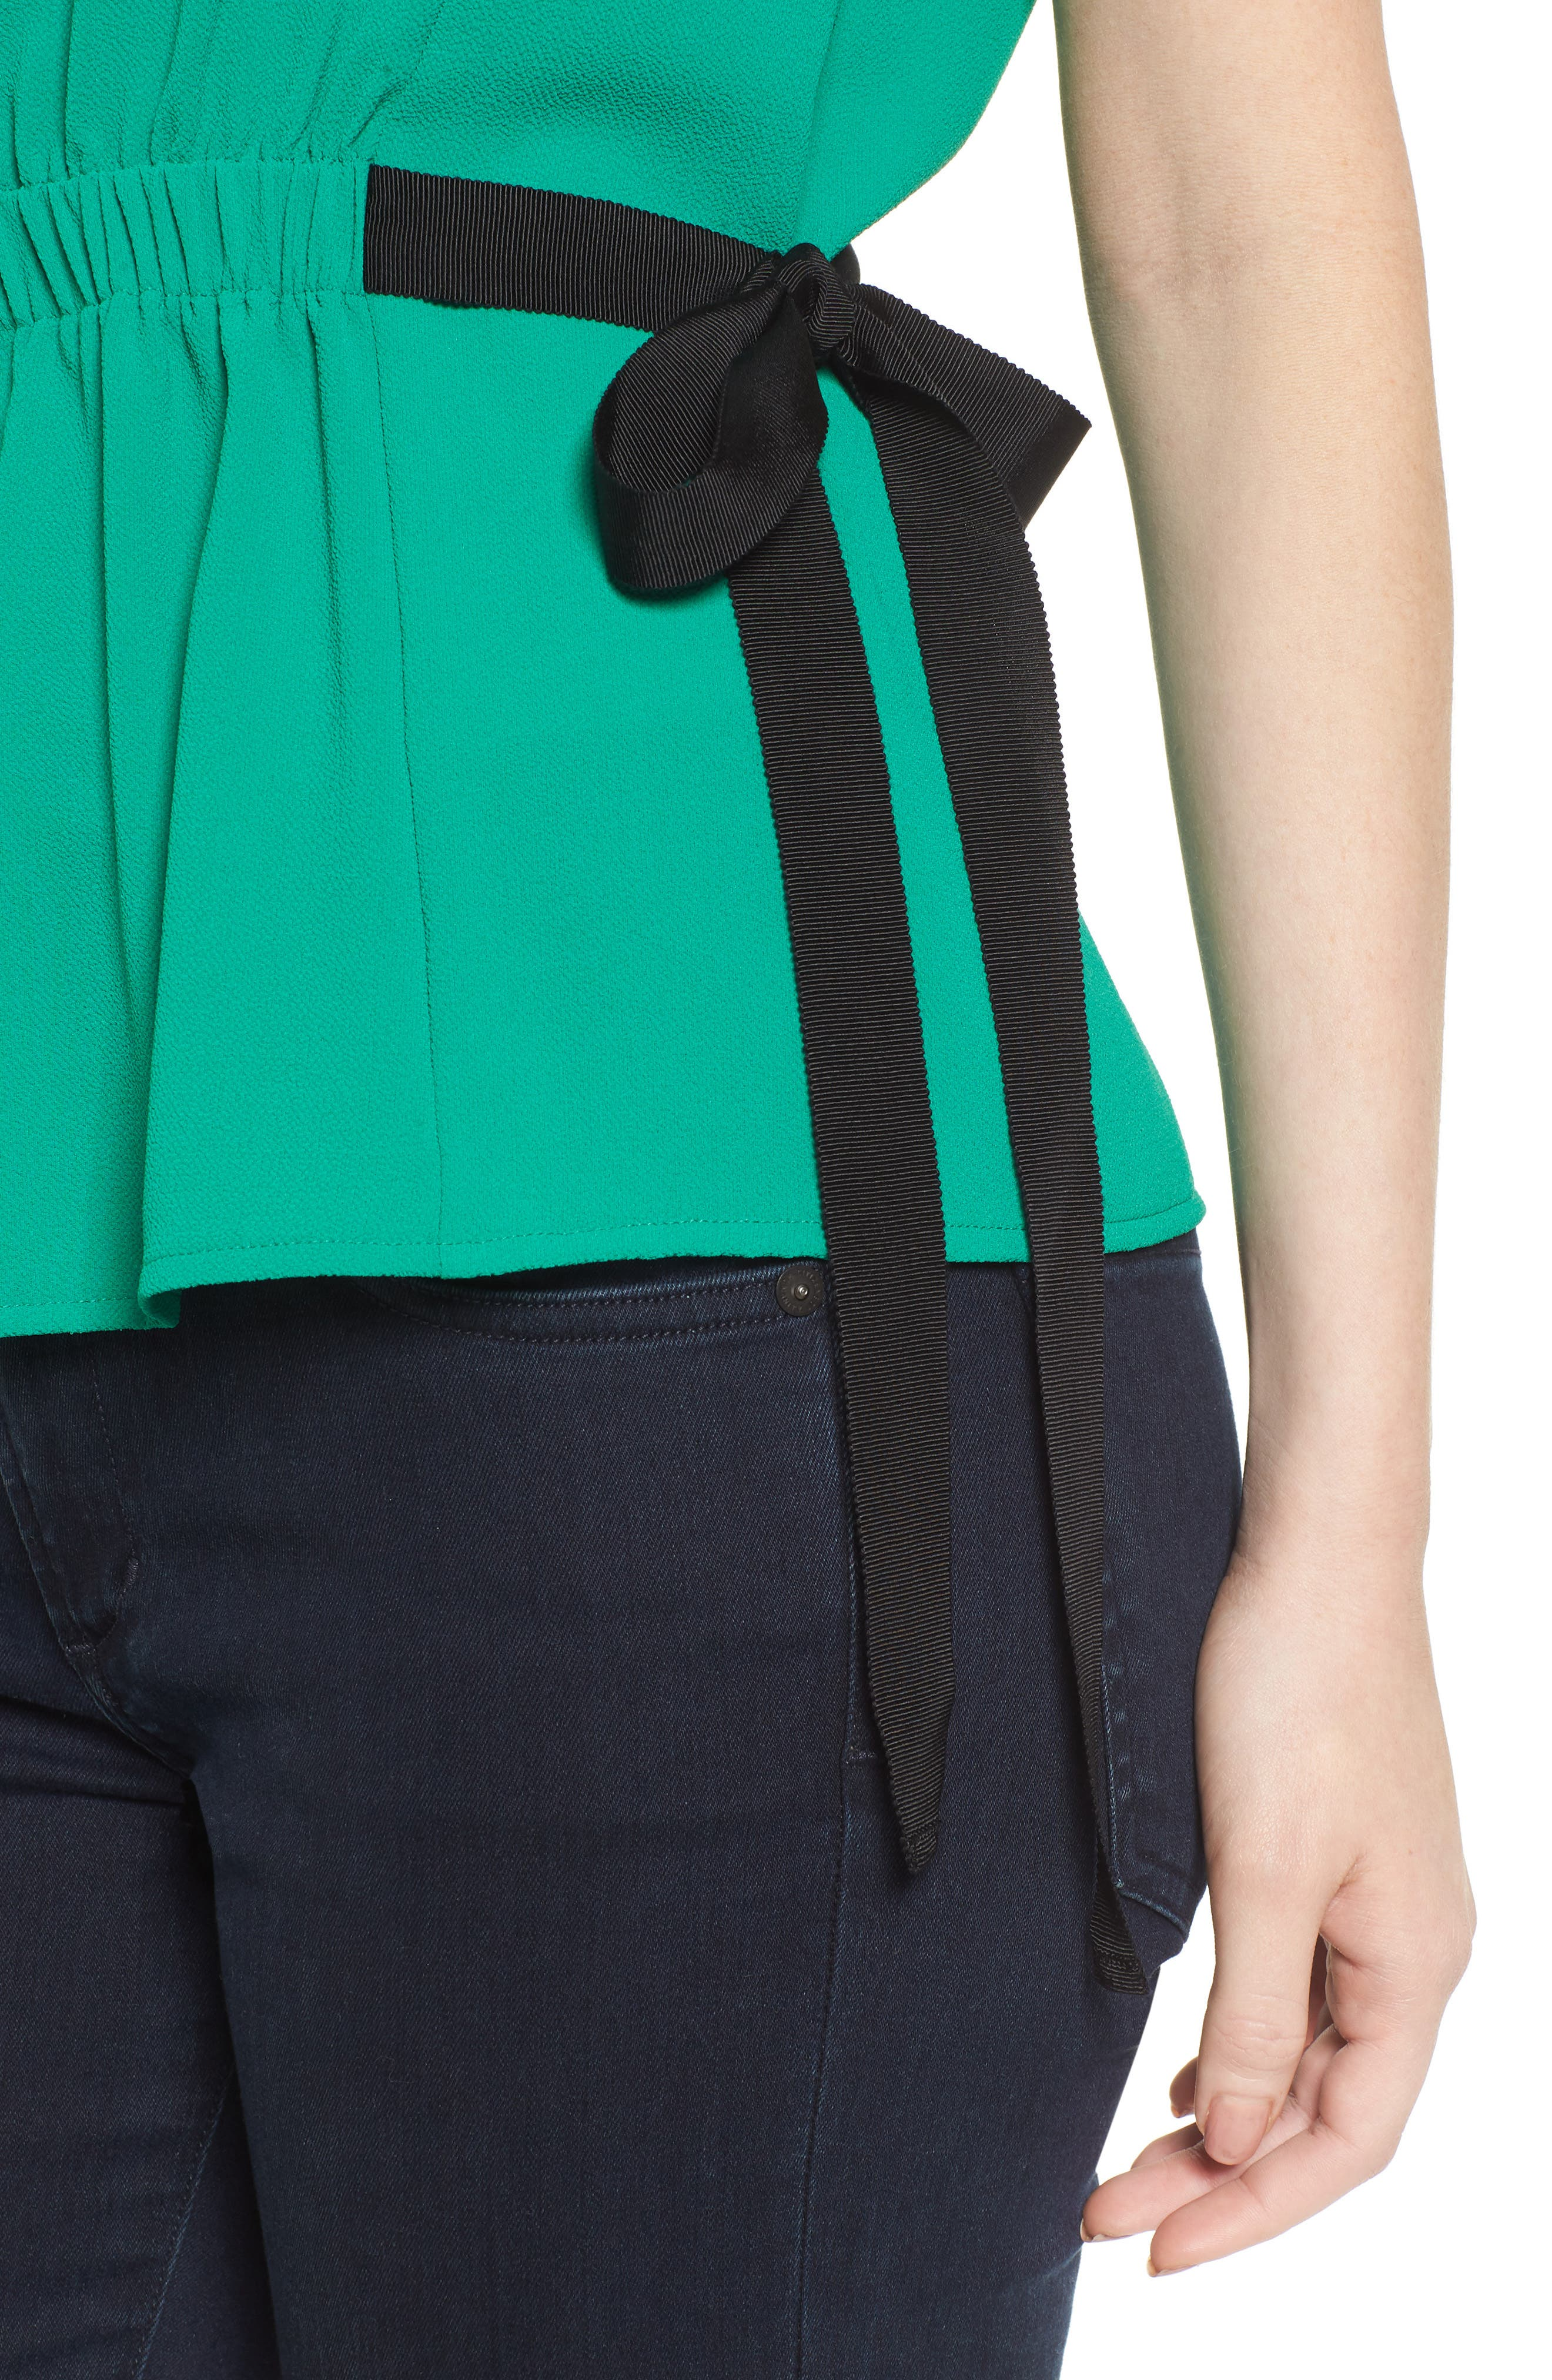 Gathered Waist Side Tie Top,                             Alternate thumbnail 4, color,                             Kelly Green With Black Tie